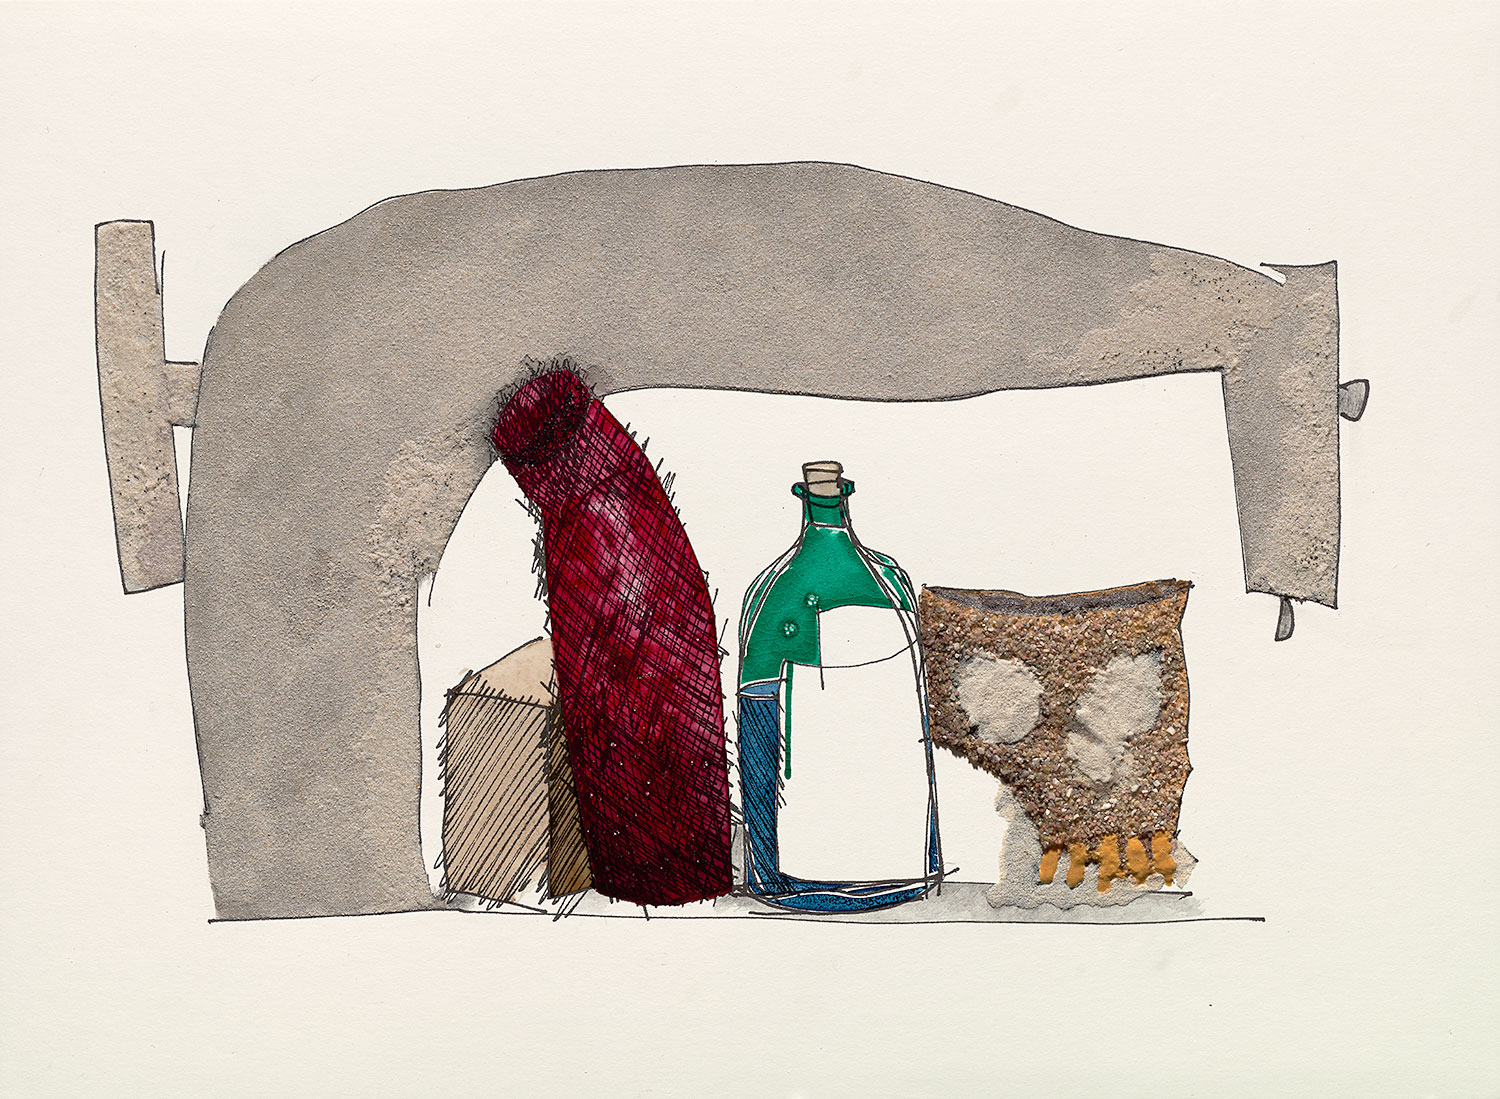 Irving Penn,  Still Life with Skull, Bottle, and Sewing Machine , 2005. Watercolor with sand and gum arabic over inkjet print on paper.  ©  The Irving Penn Foundation.